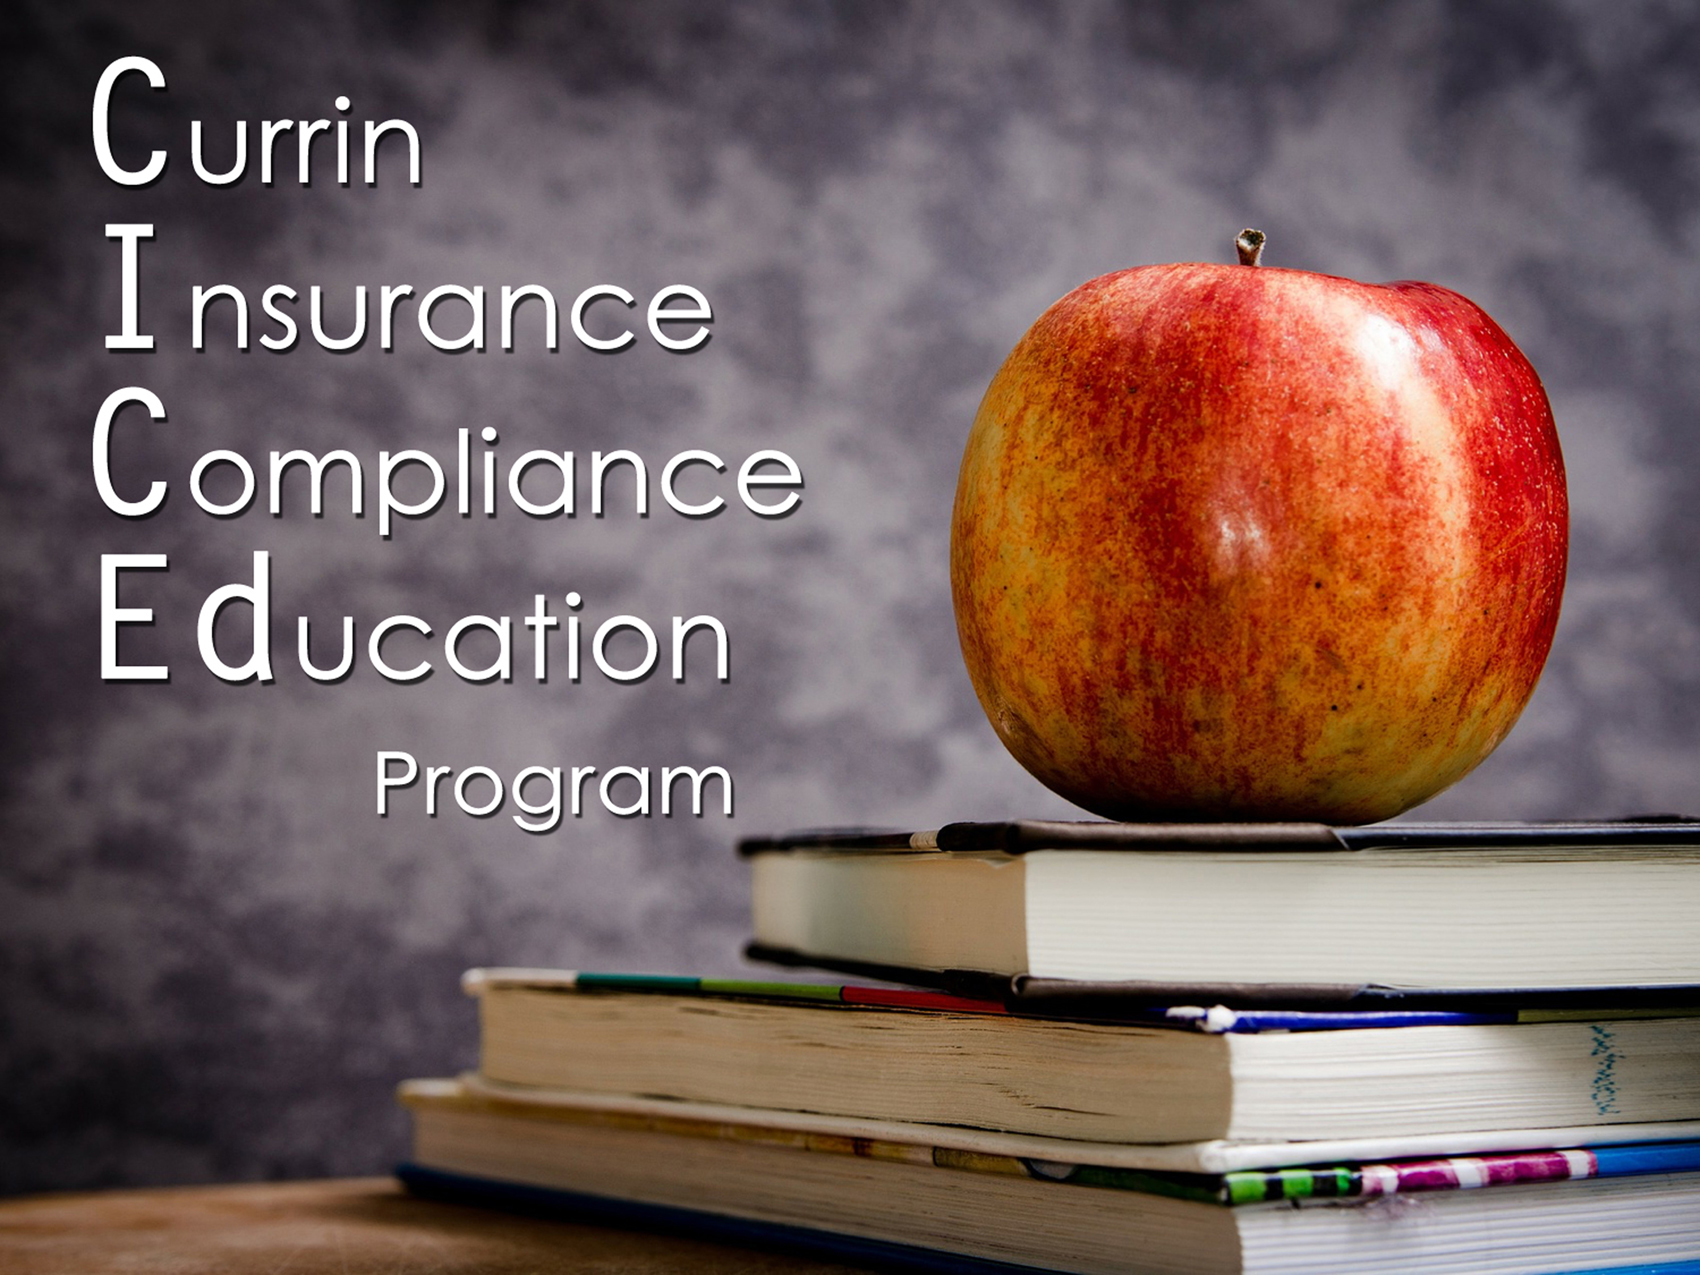 Currin Insurance Compliance Education (CICEd)